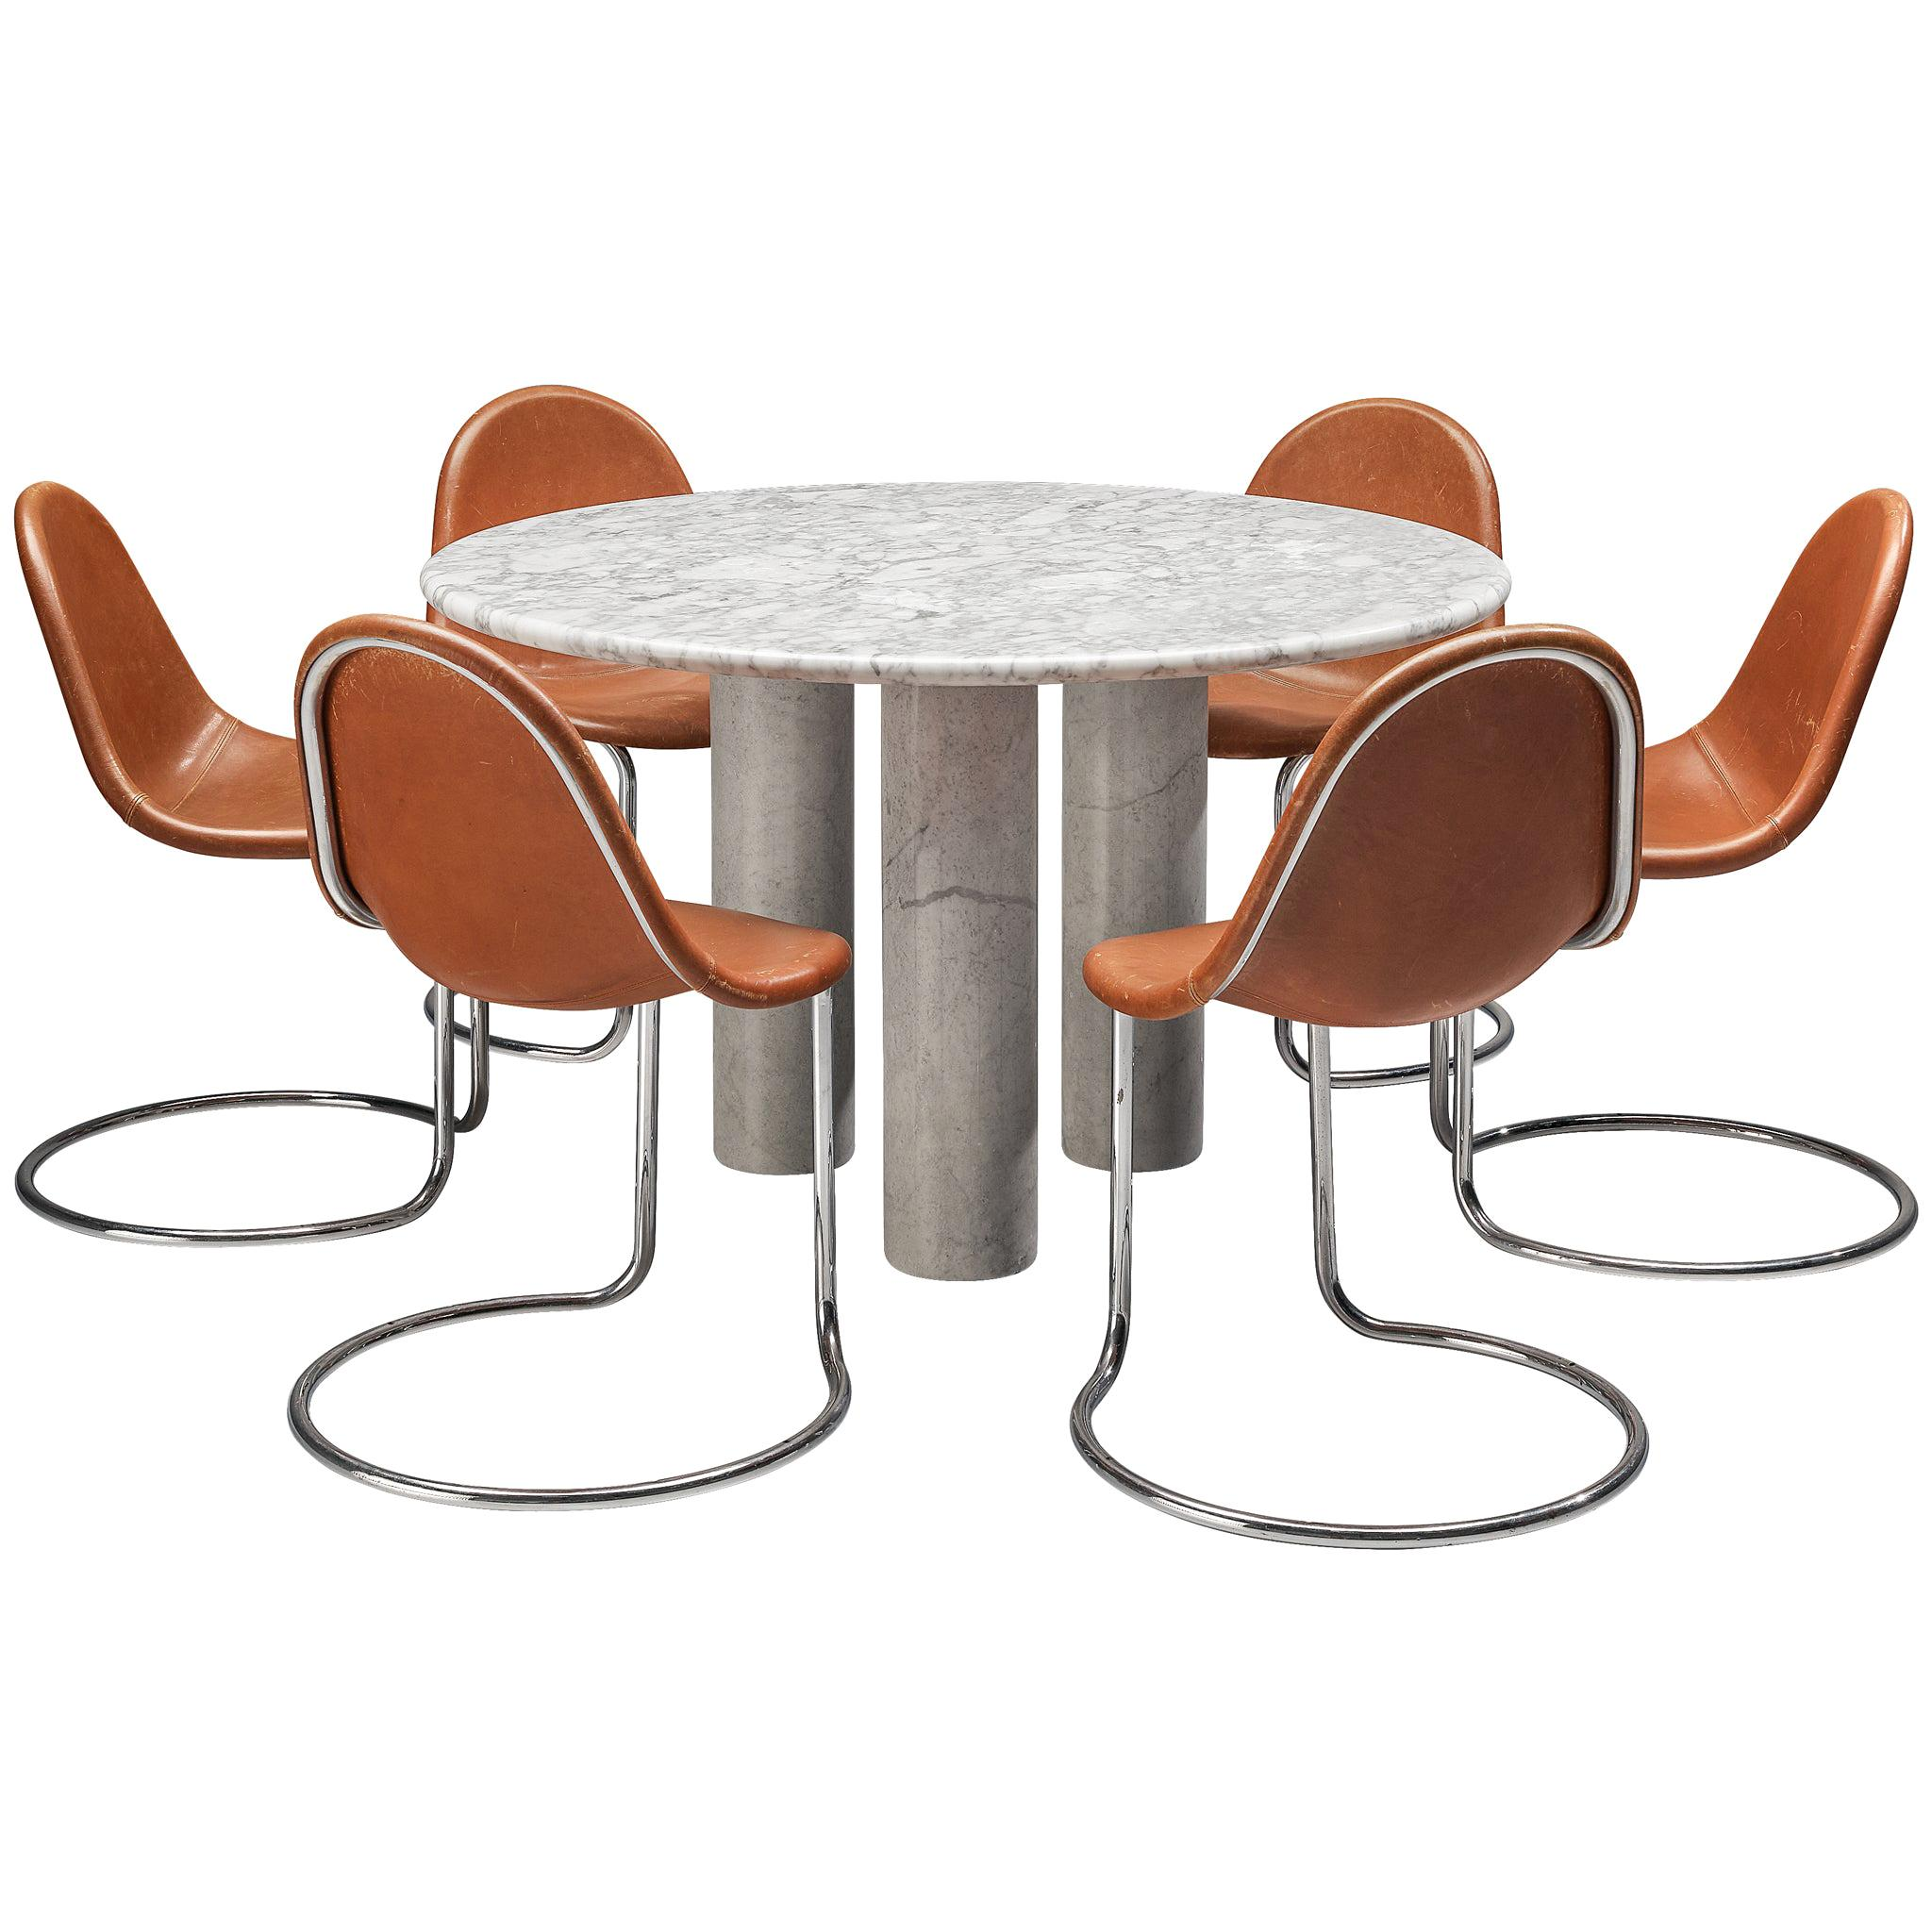 Round Table in White Marble and G. Stoppino 'Maia' Dining Chairs in Leather